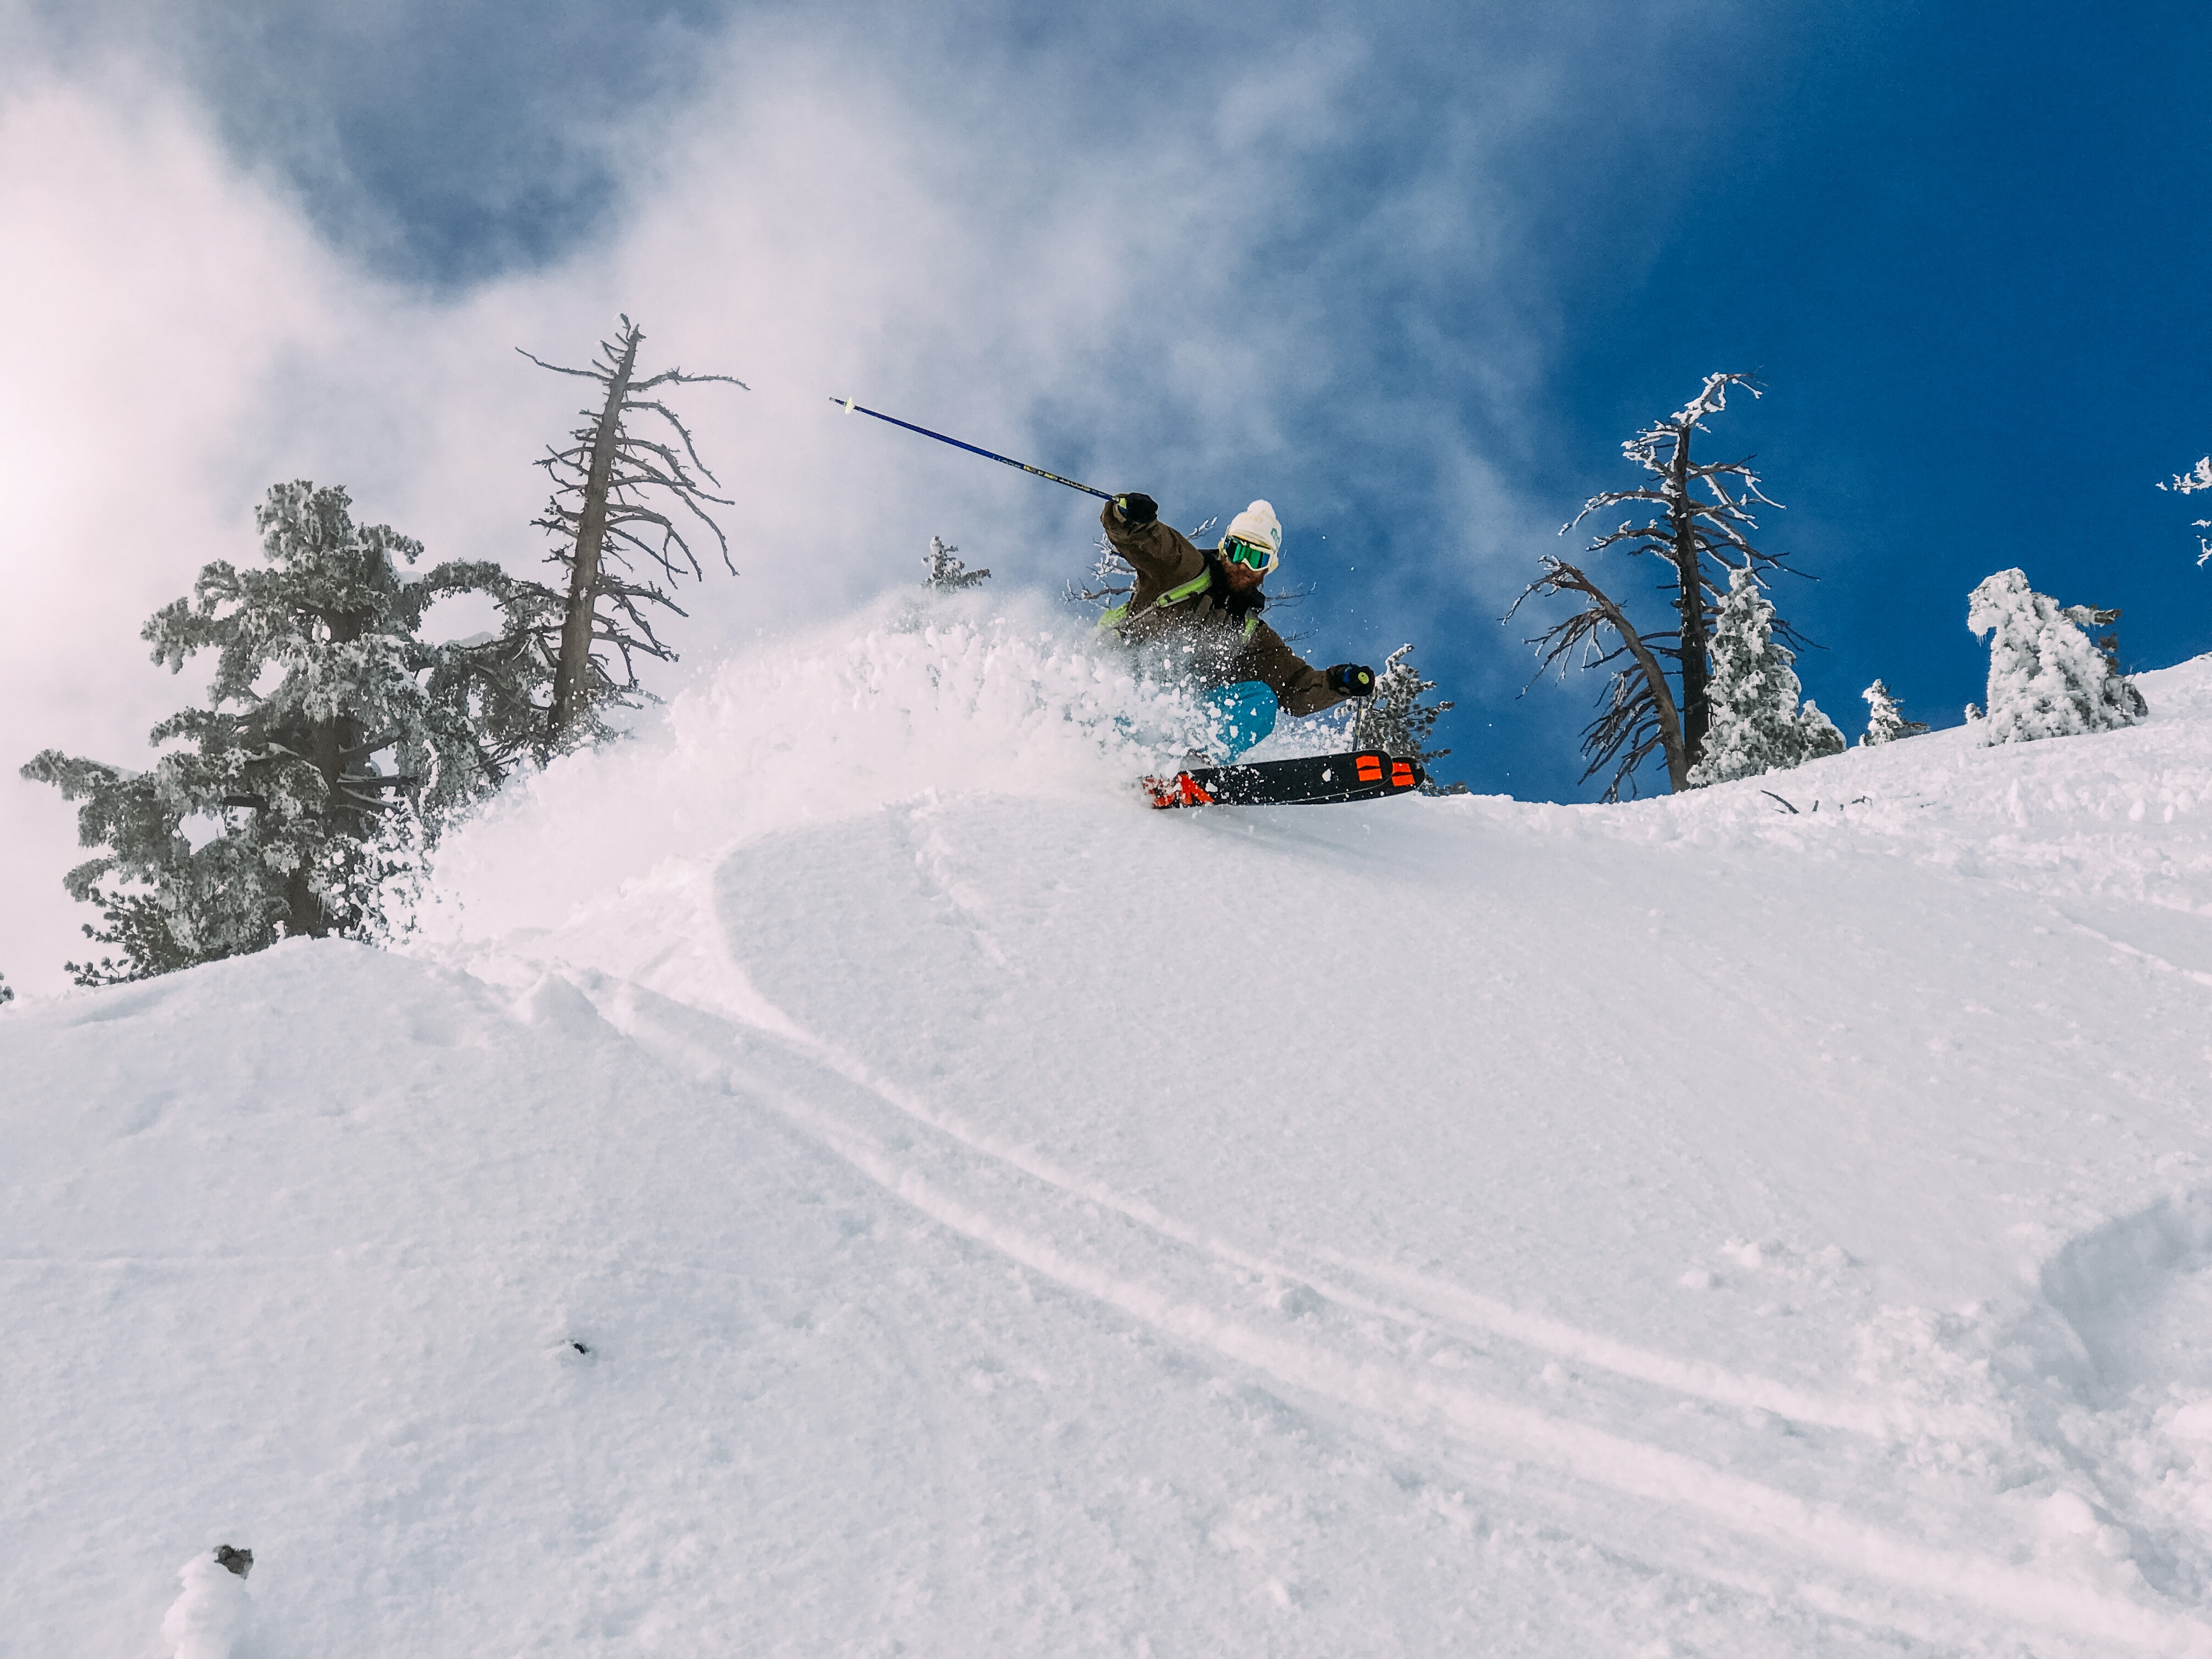 person skiing on snow-covered hill